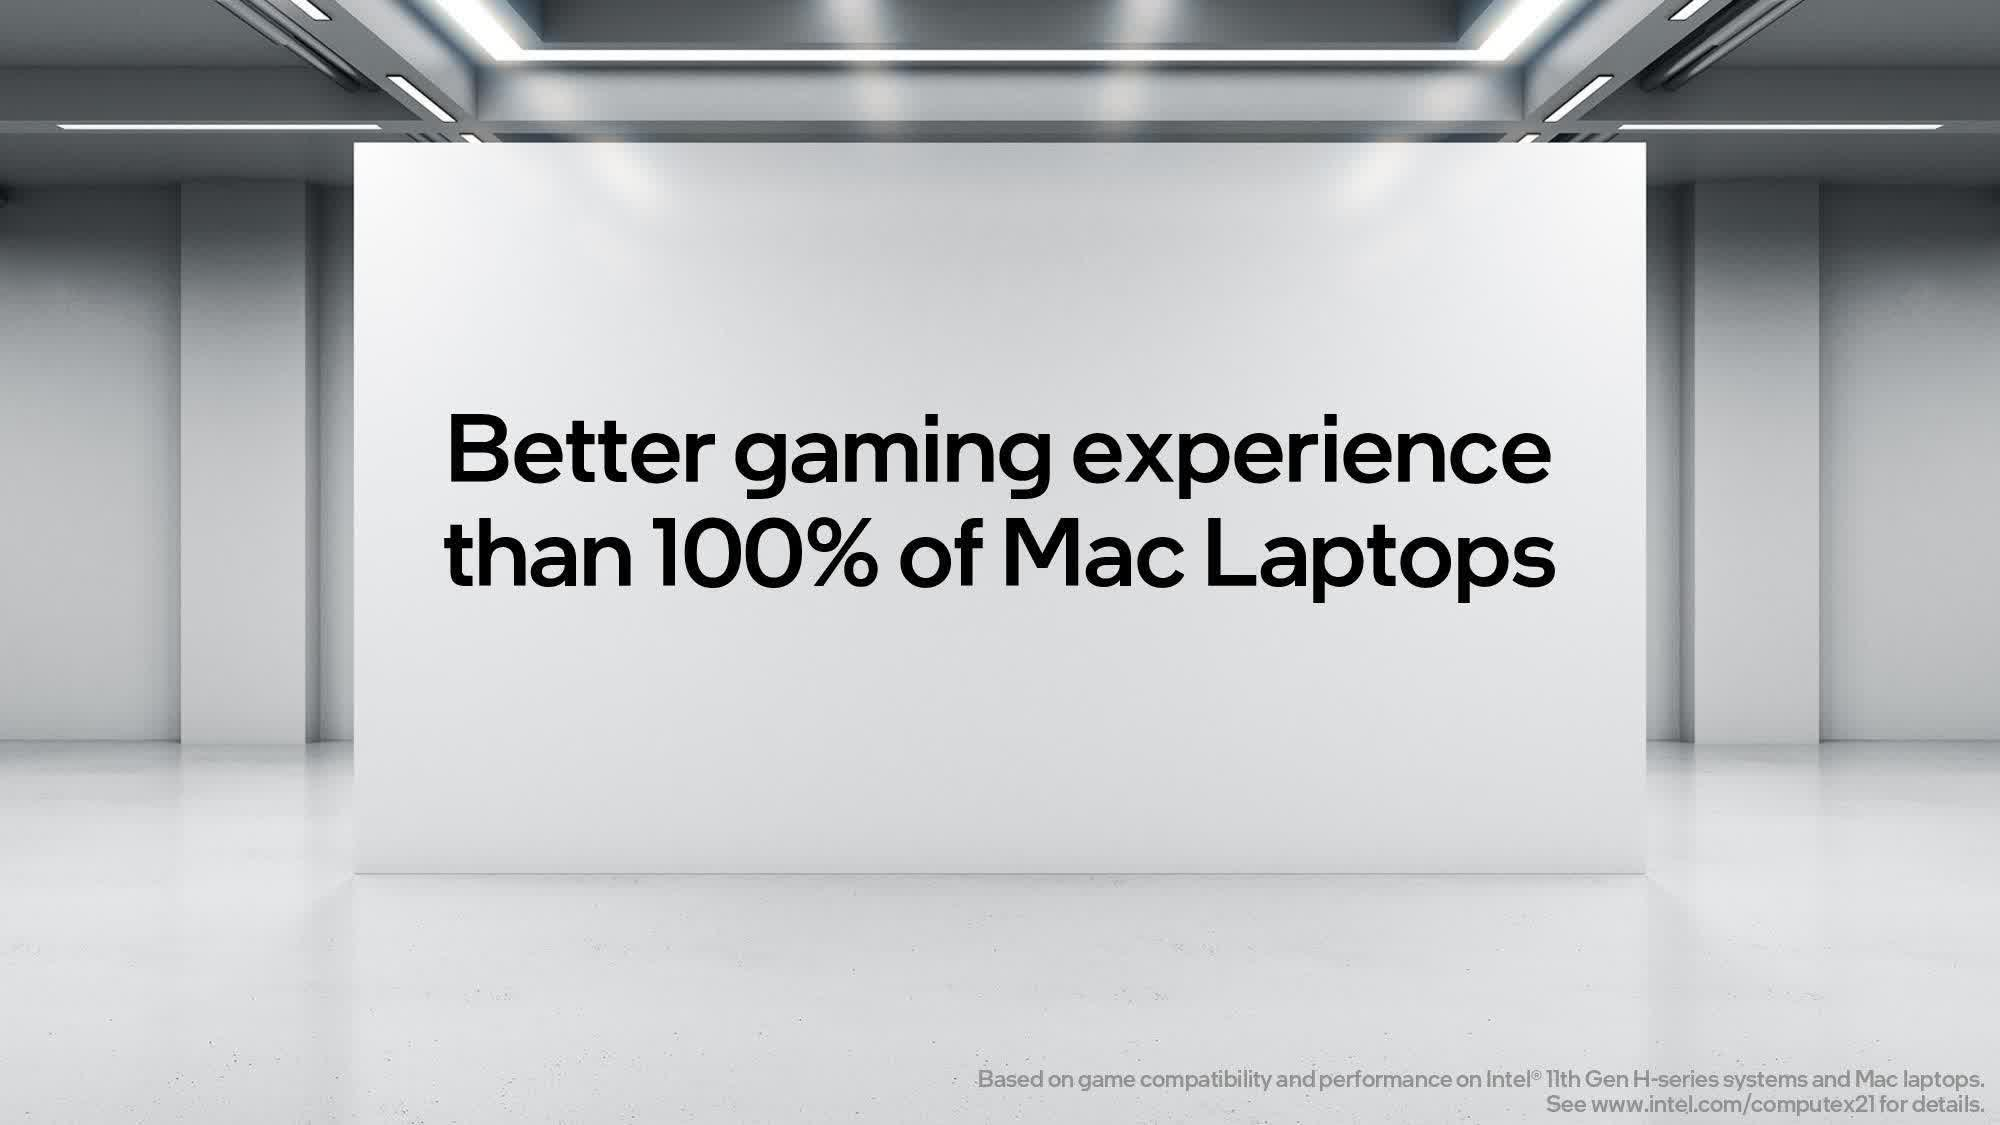 Intel says it provides a better gaming experience than 100% of Mac laptops